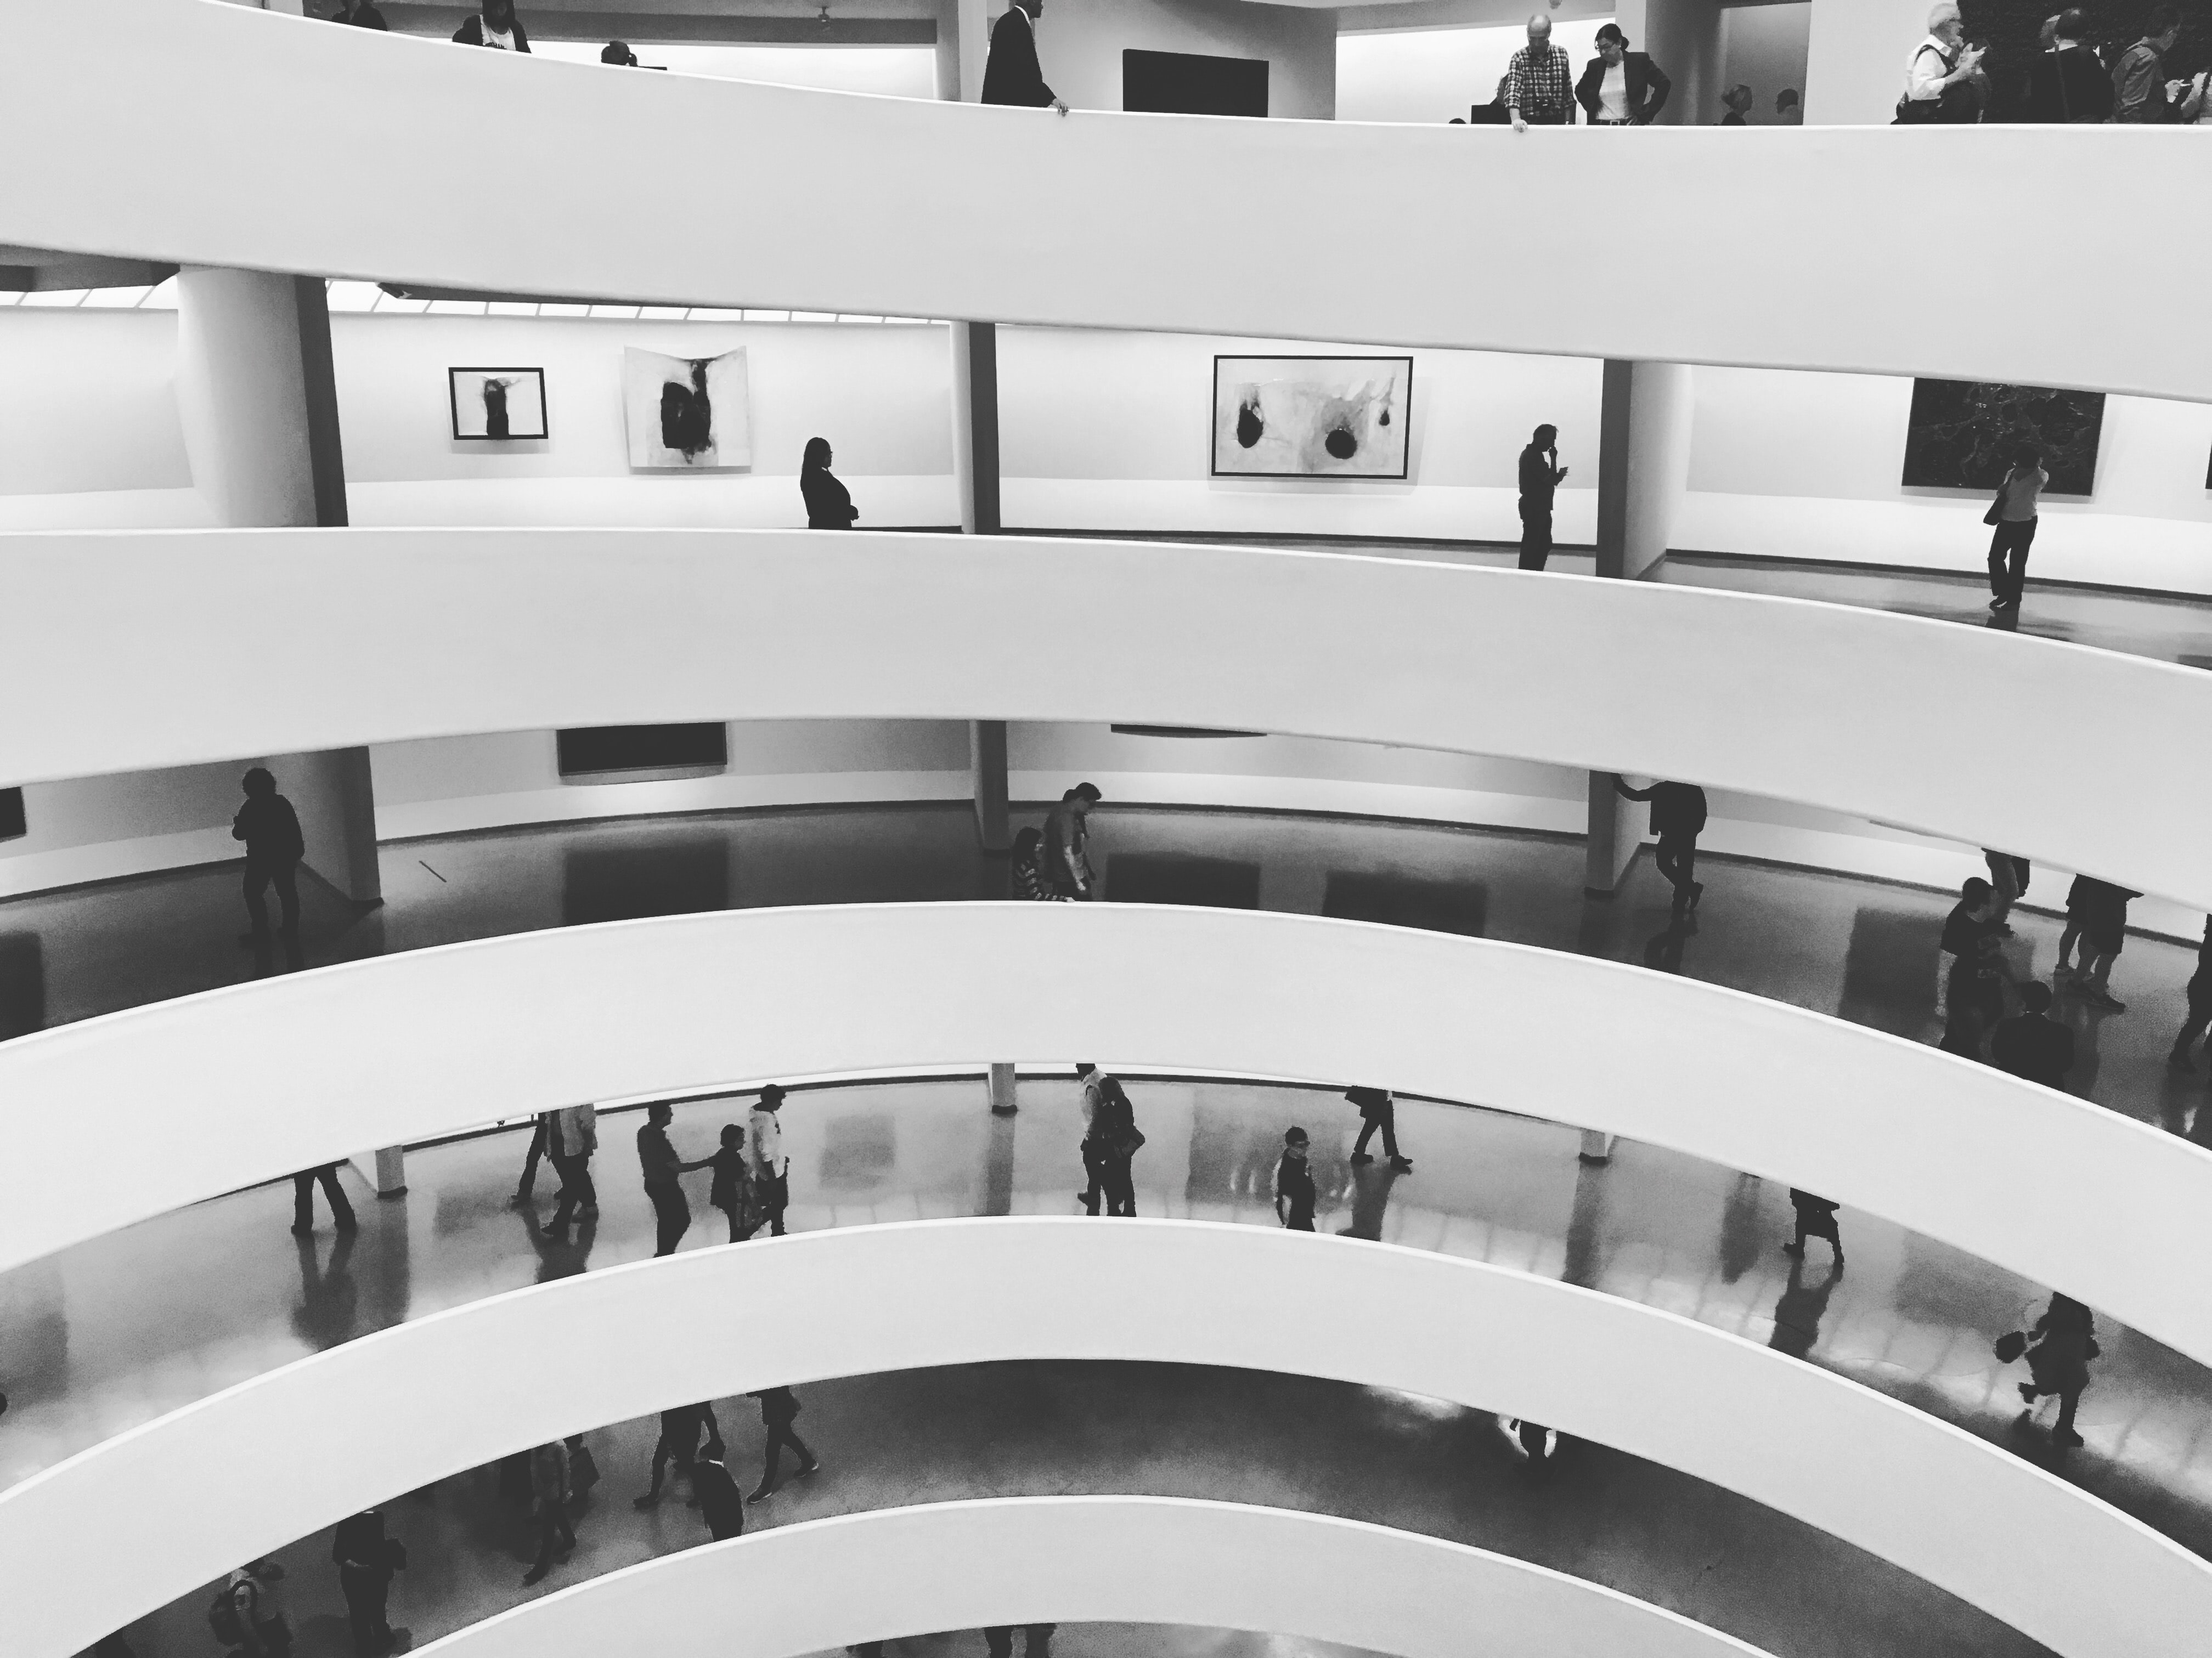 A black-and-white shot of multiple building floors seen from a terrace